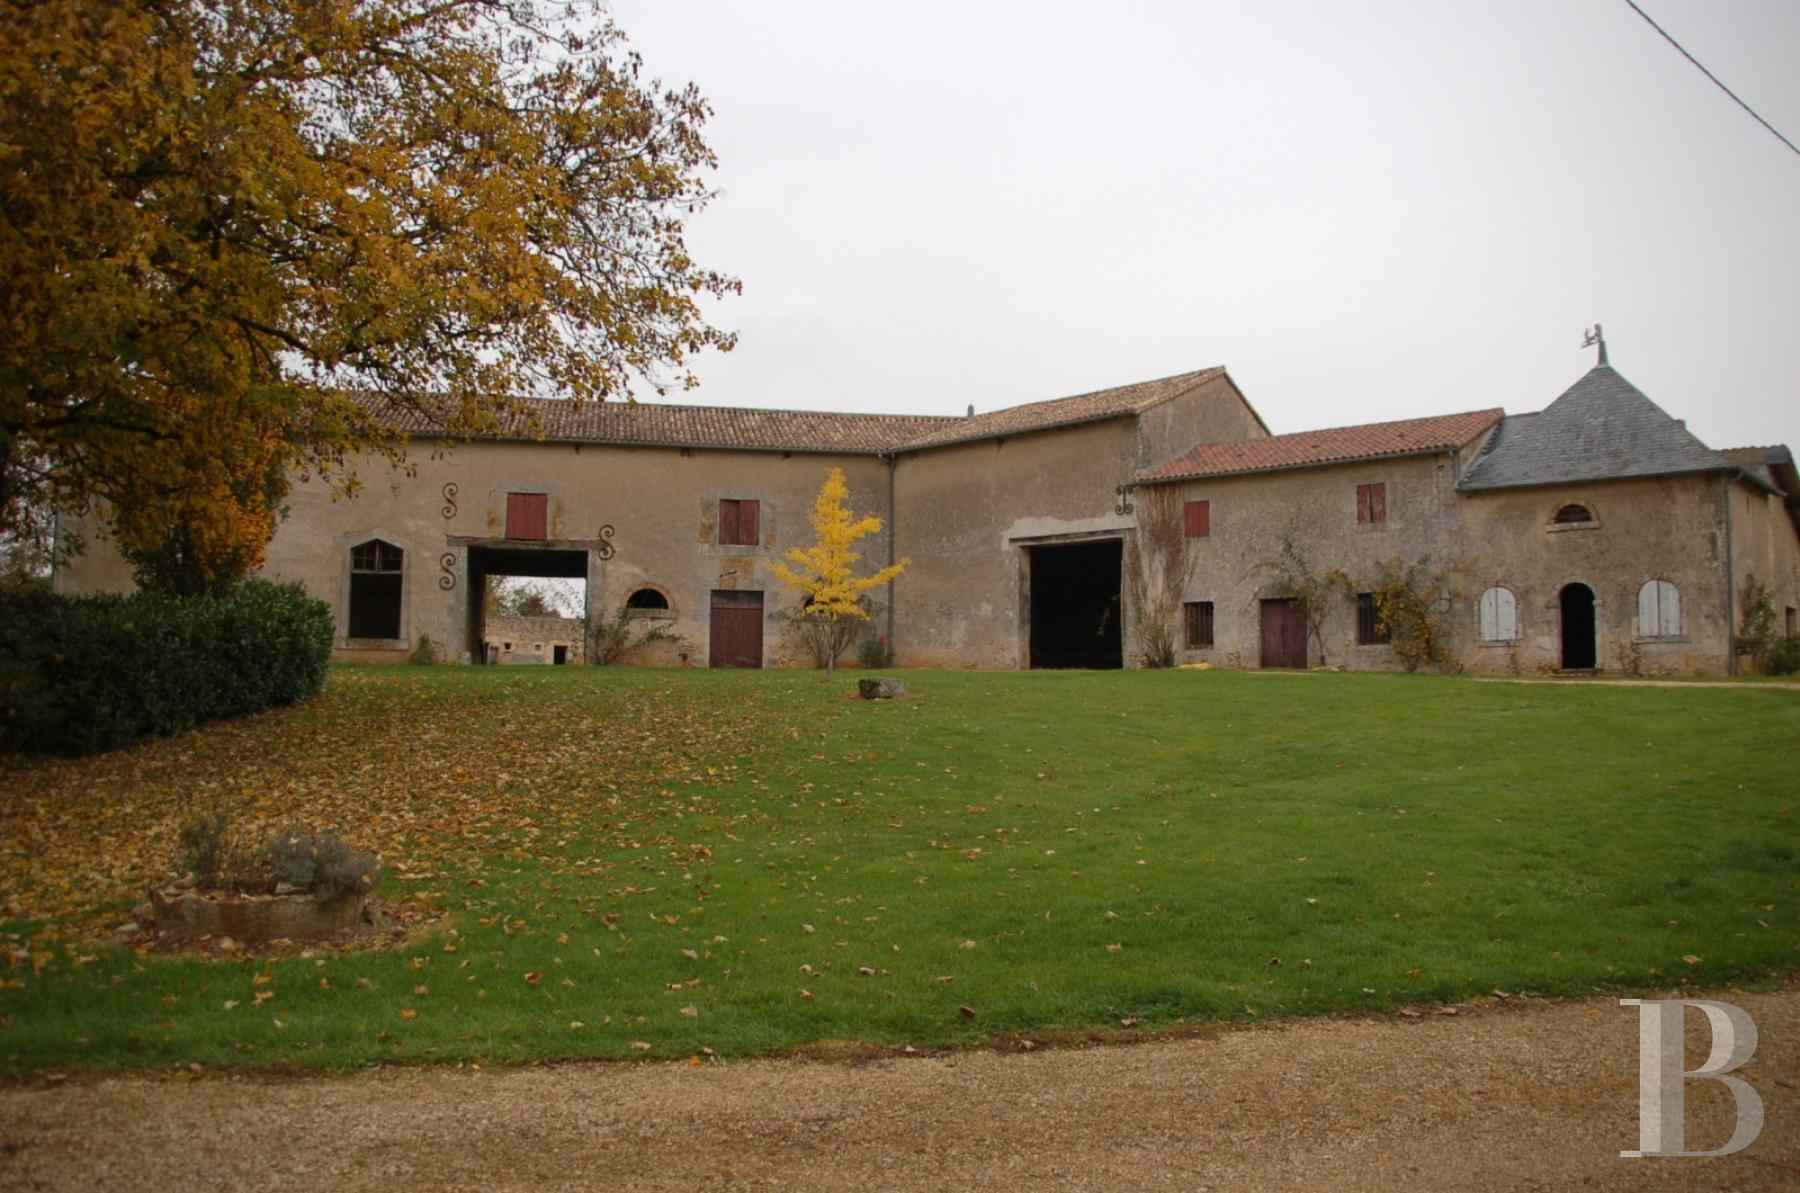 chateaux for sale France poitou charentes property outbuildings - 7 zoom